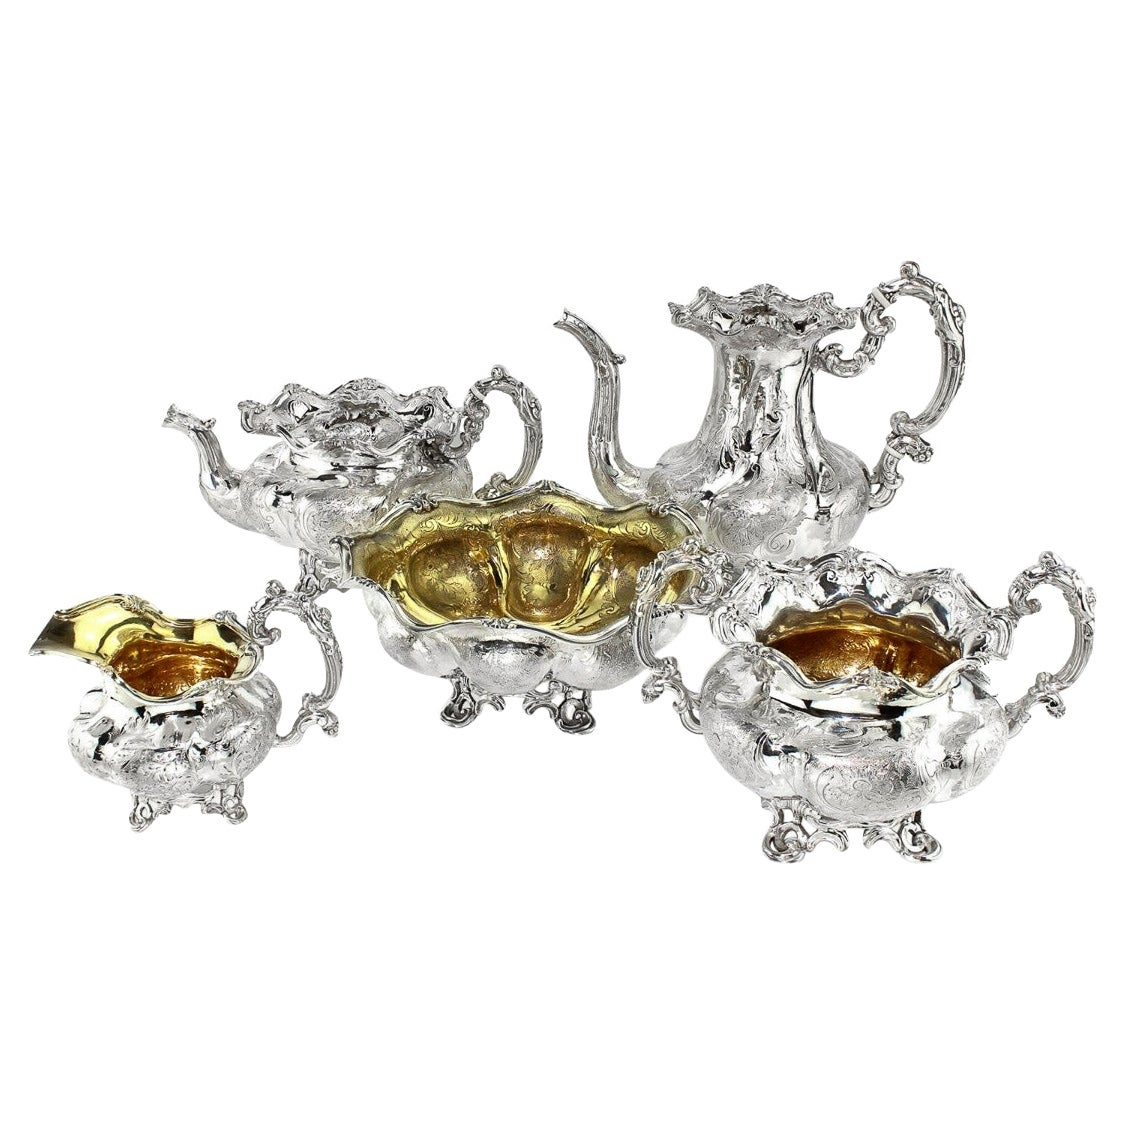 19th Century Imperial Russian 5 Piece Solid Silver Tea & Coffee Service, c.1844